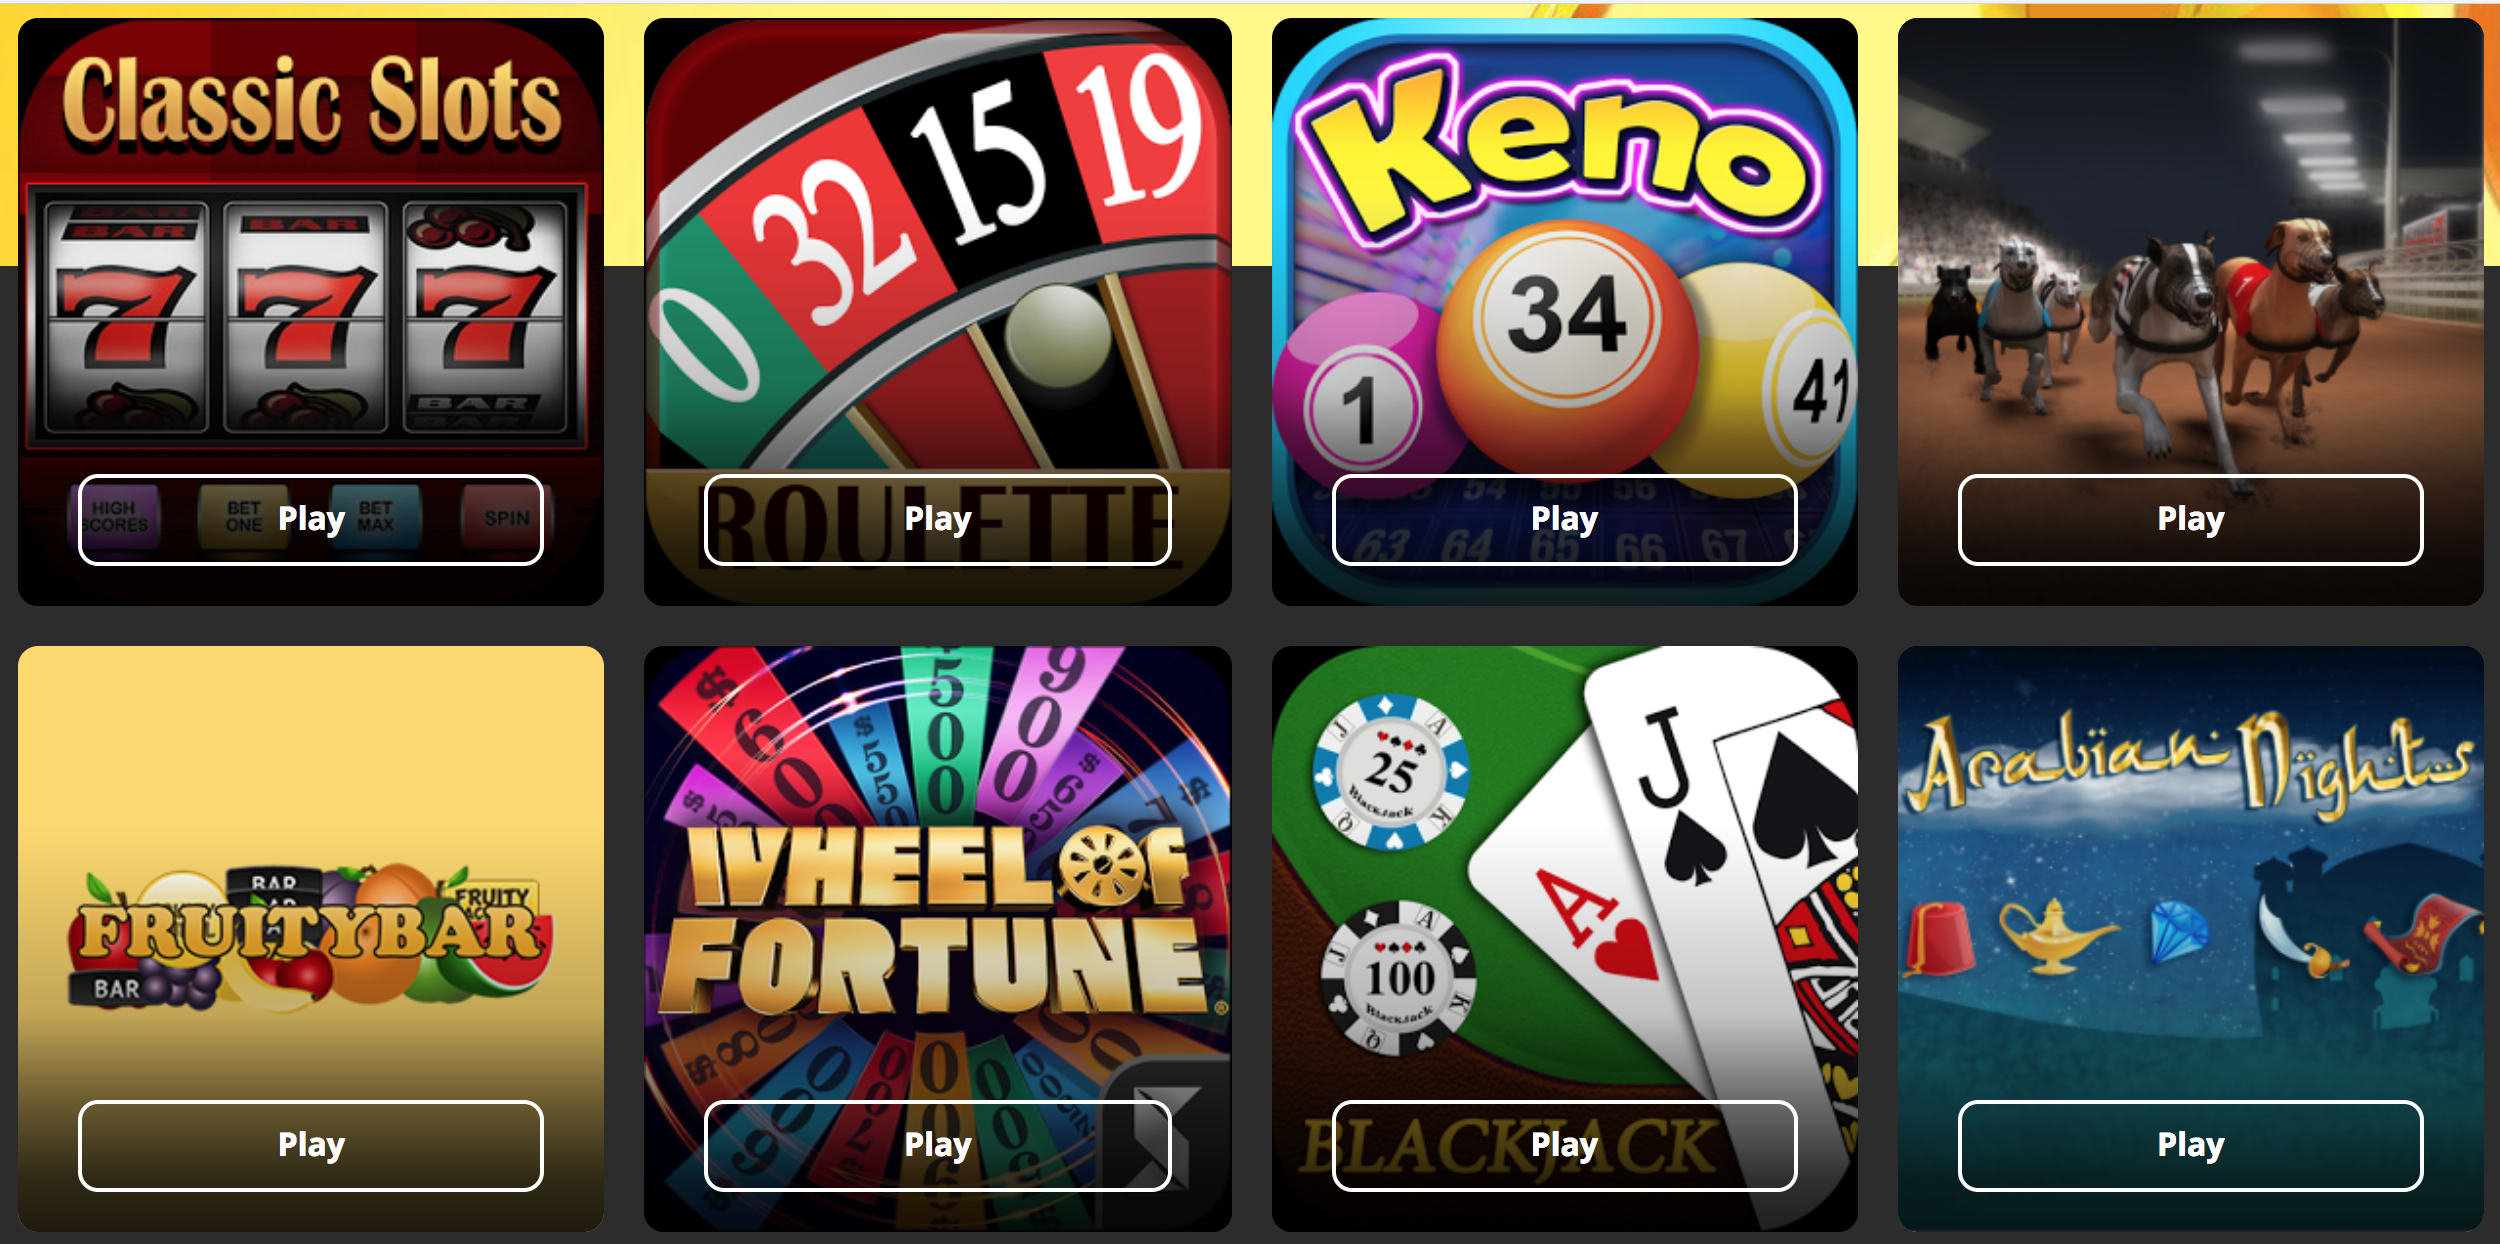 Zero bet slot games